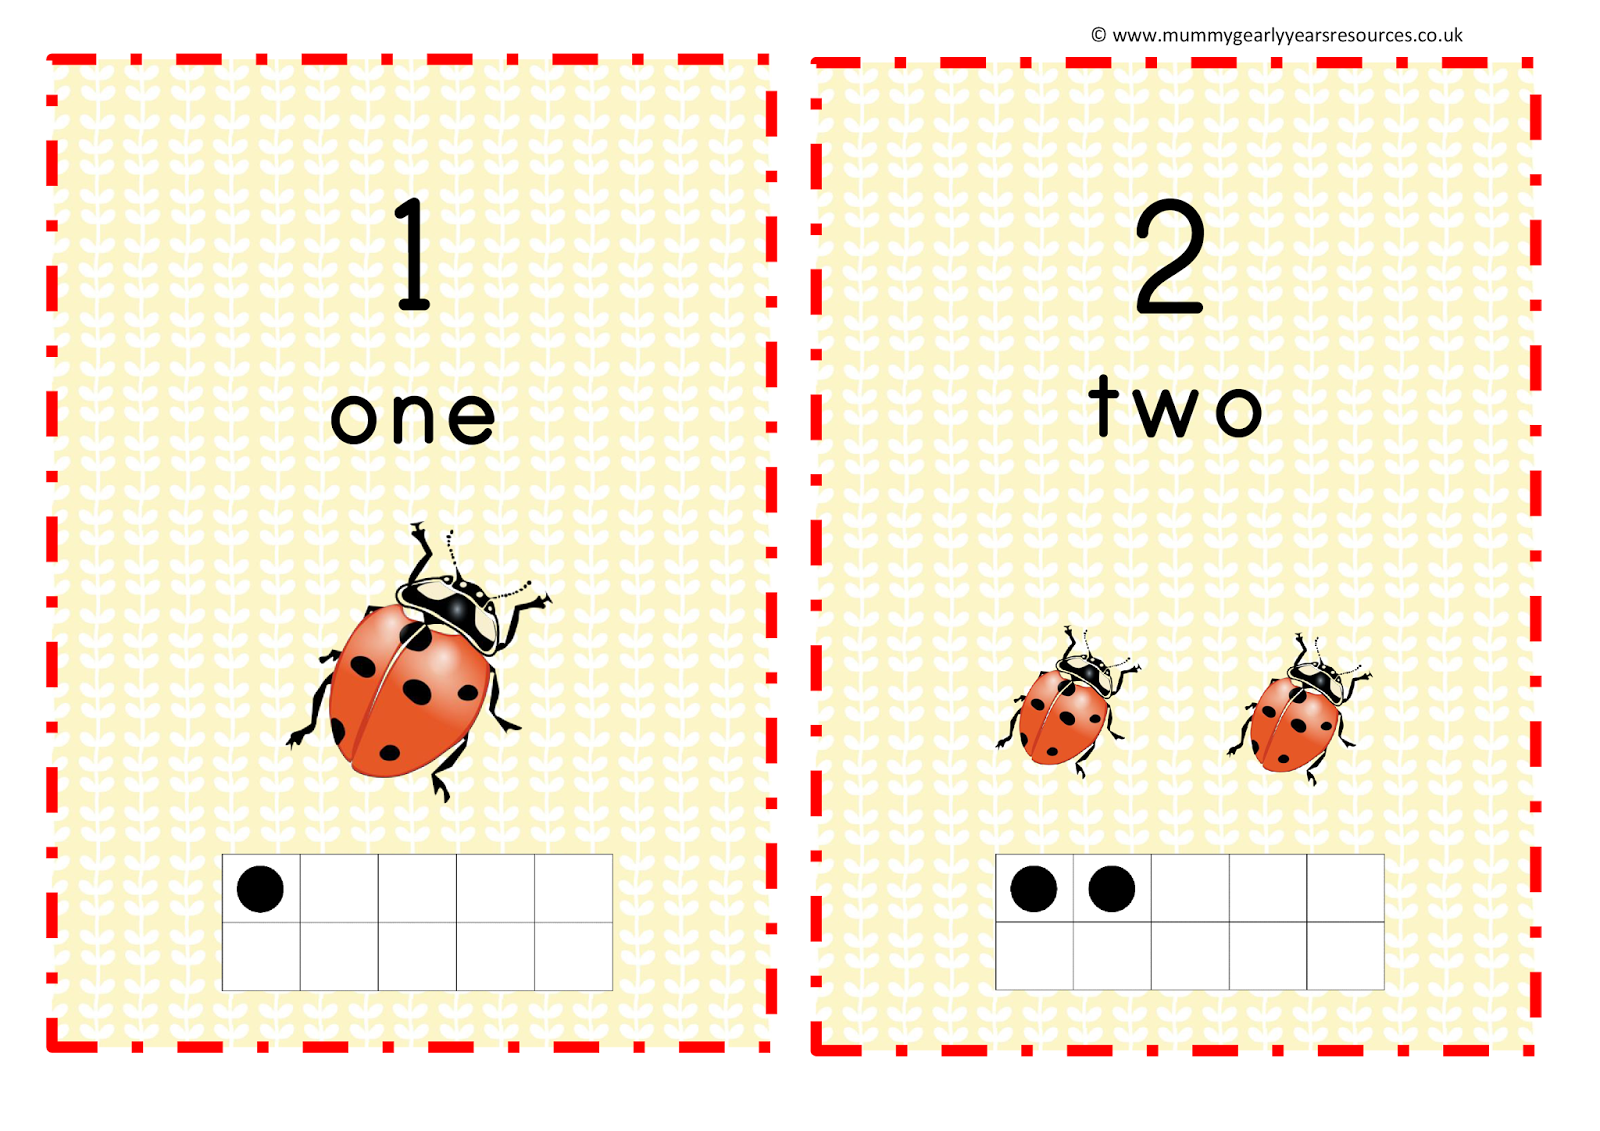 Mini beast number line - Mummy G early years resources | classroom ...